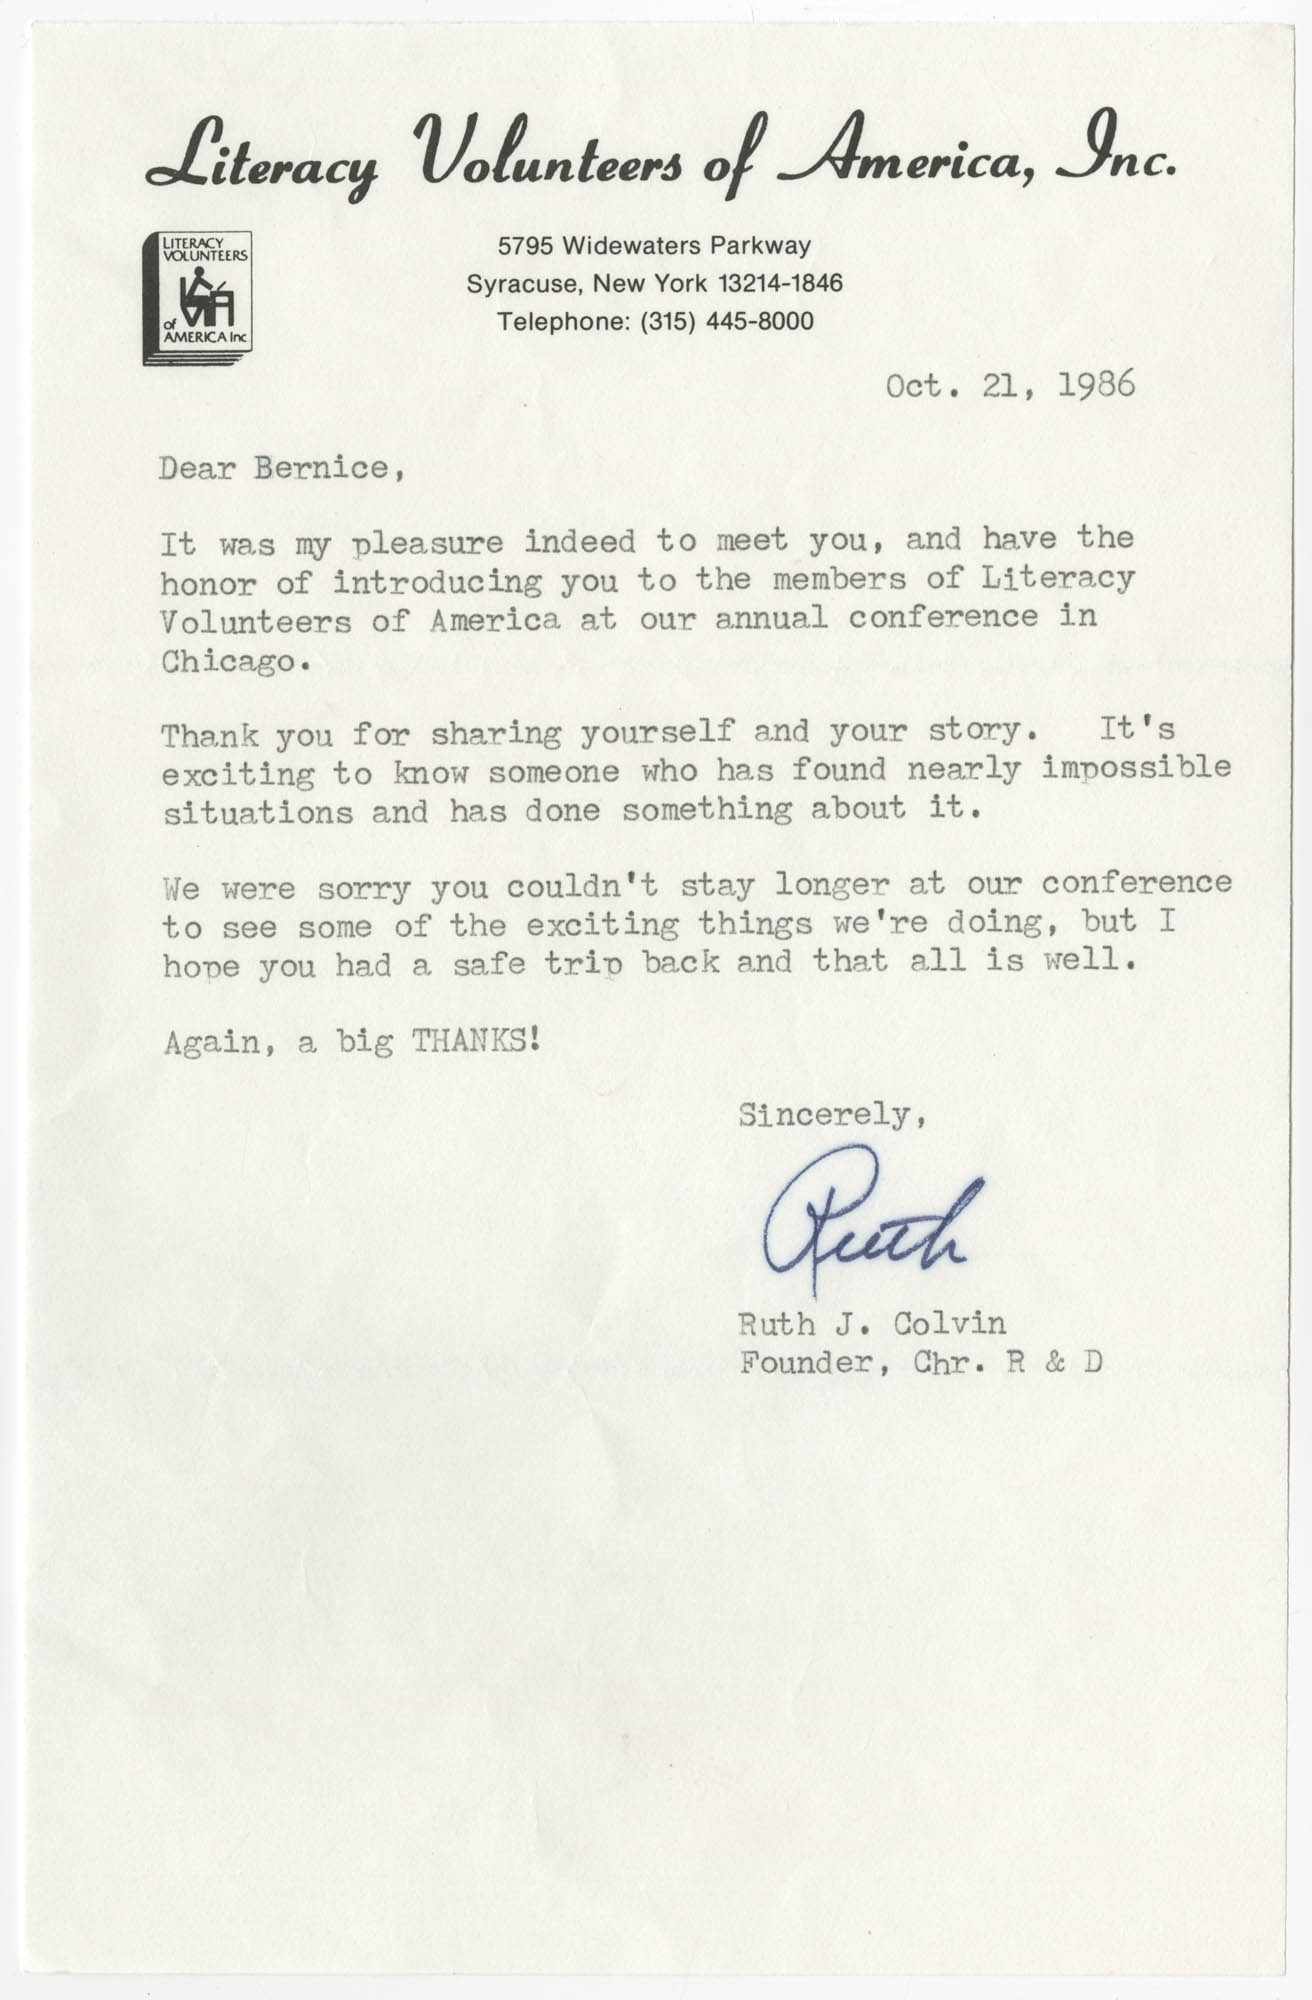 Letter from Ruth J. Colvin to Bernice Robinson, October 21, 1986